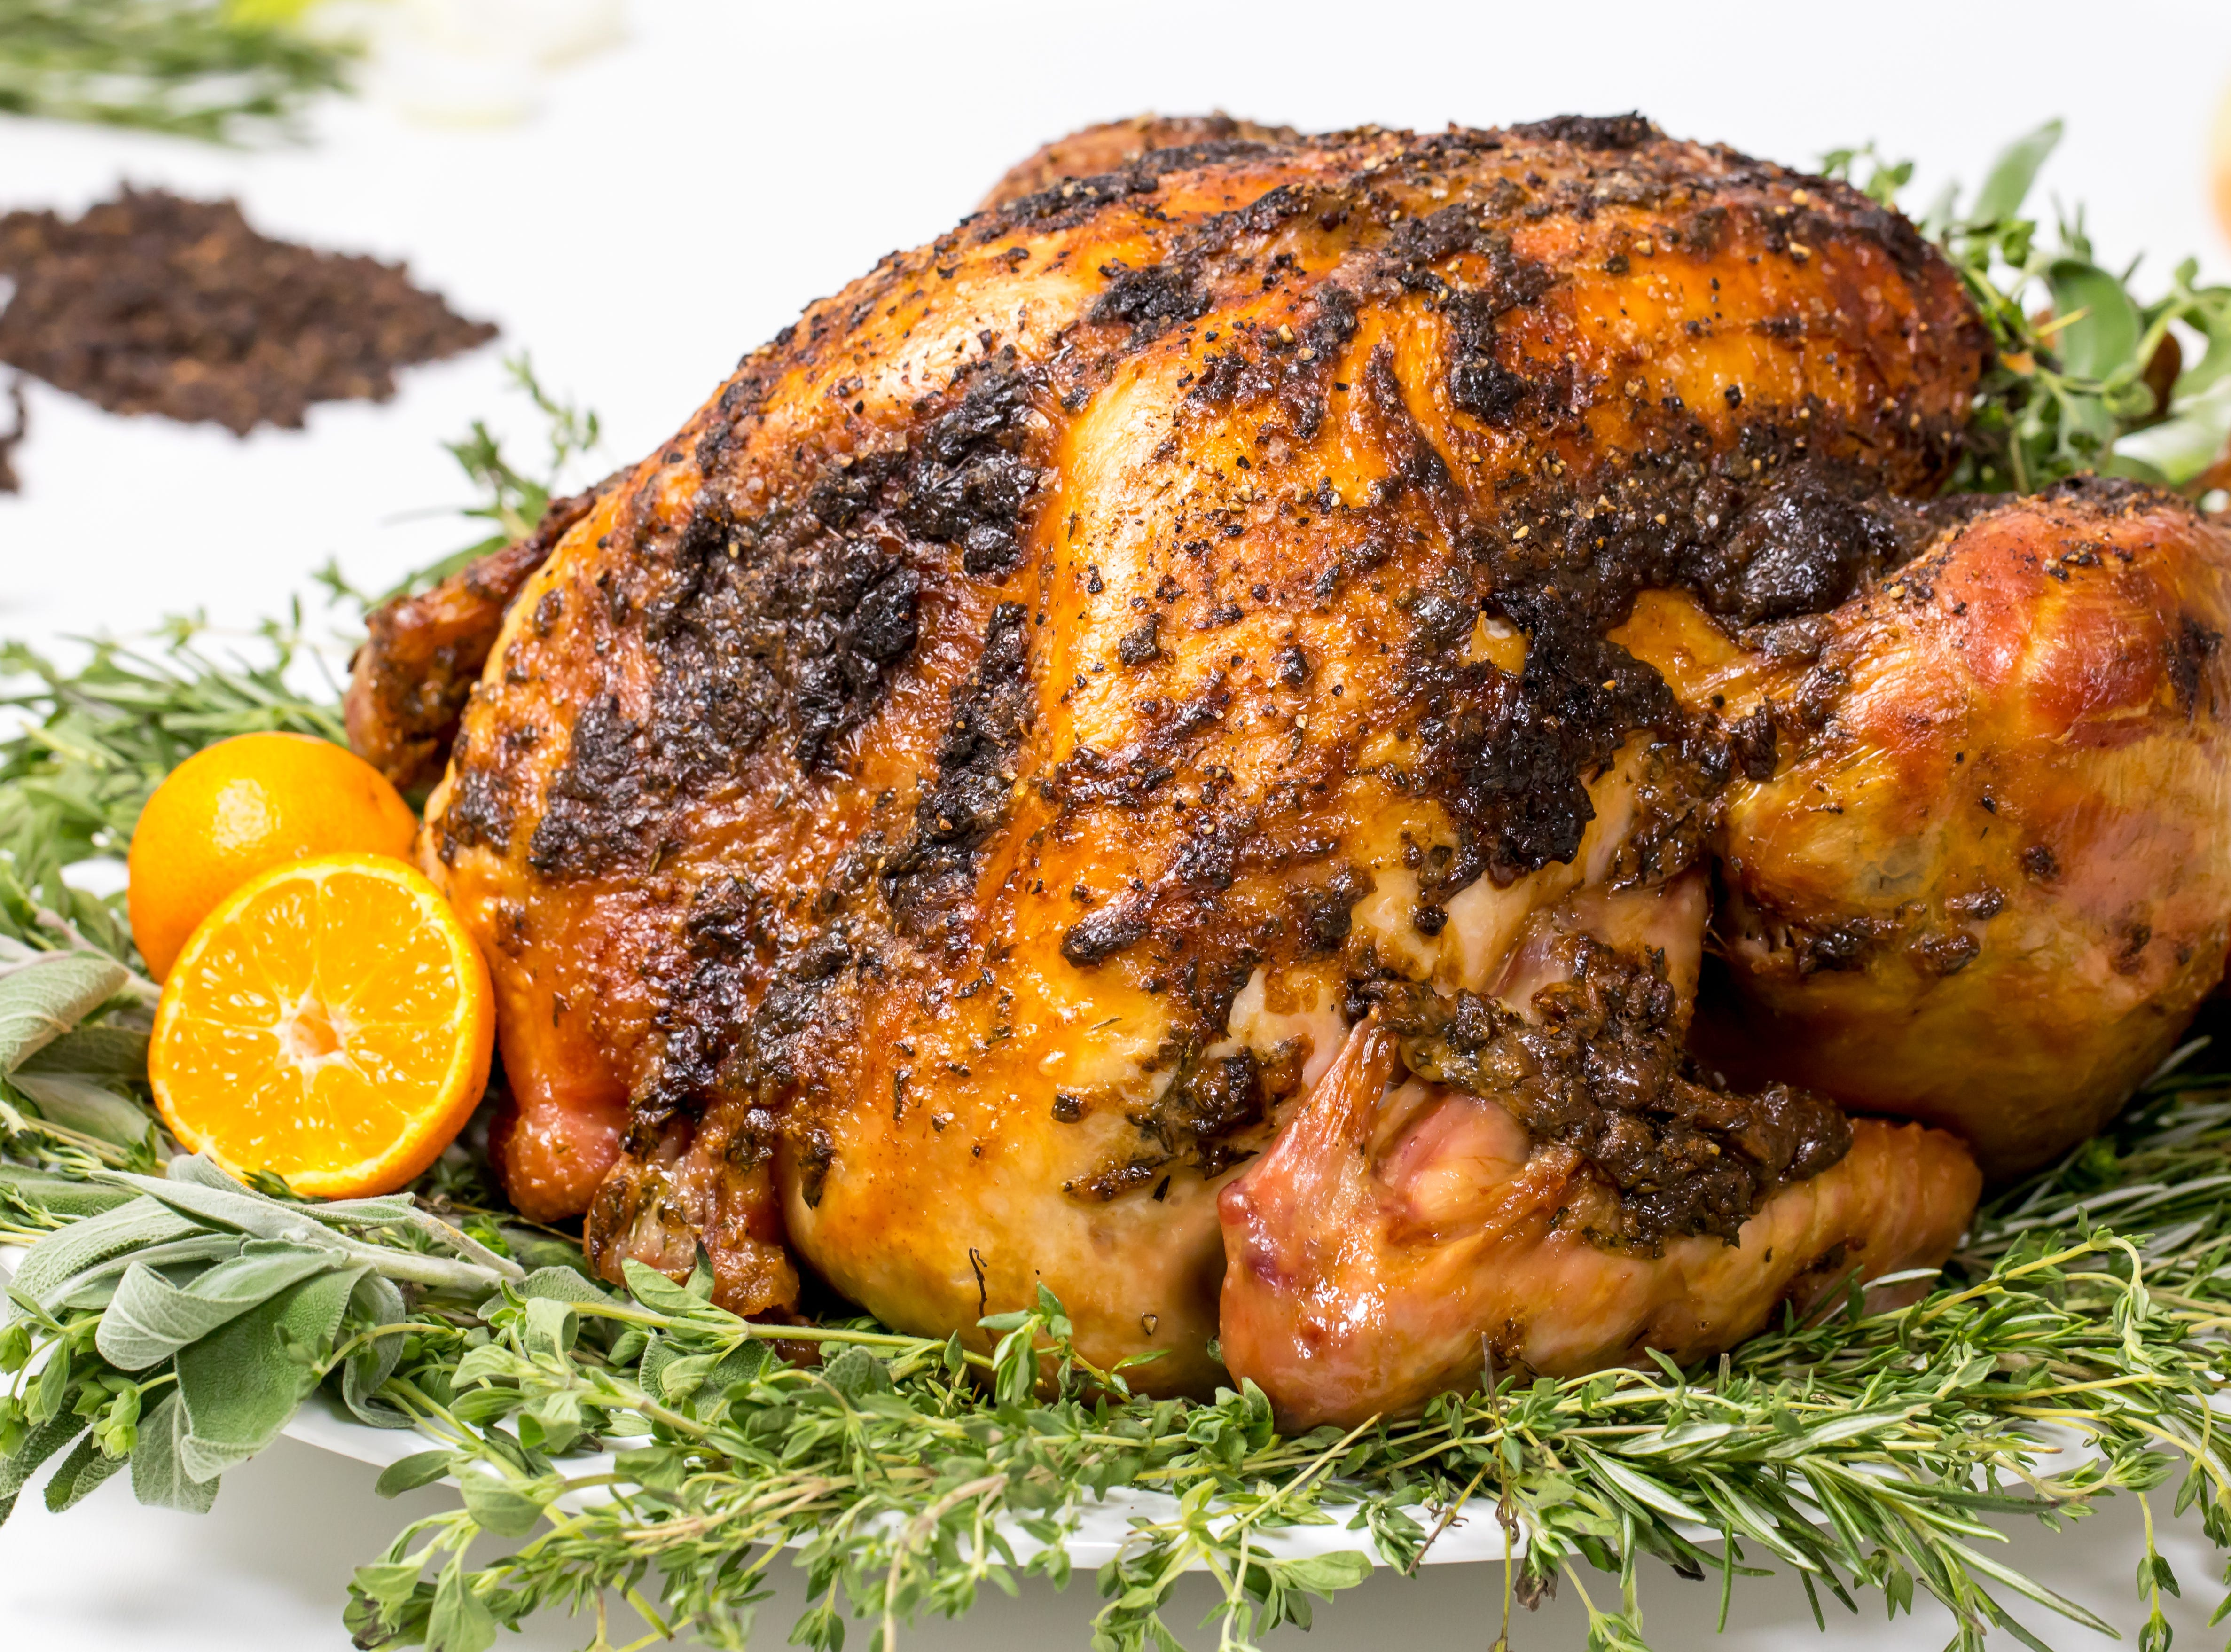 If your traditional Christmas turkey has your family yawning, make our mayonnaise roasted turkey recipe, inspired by She Wears Many Hats, and watch them run — not walk, run — to the holiday table.